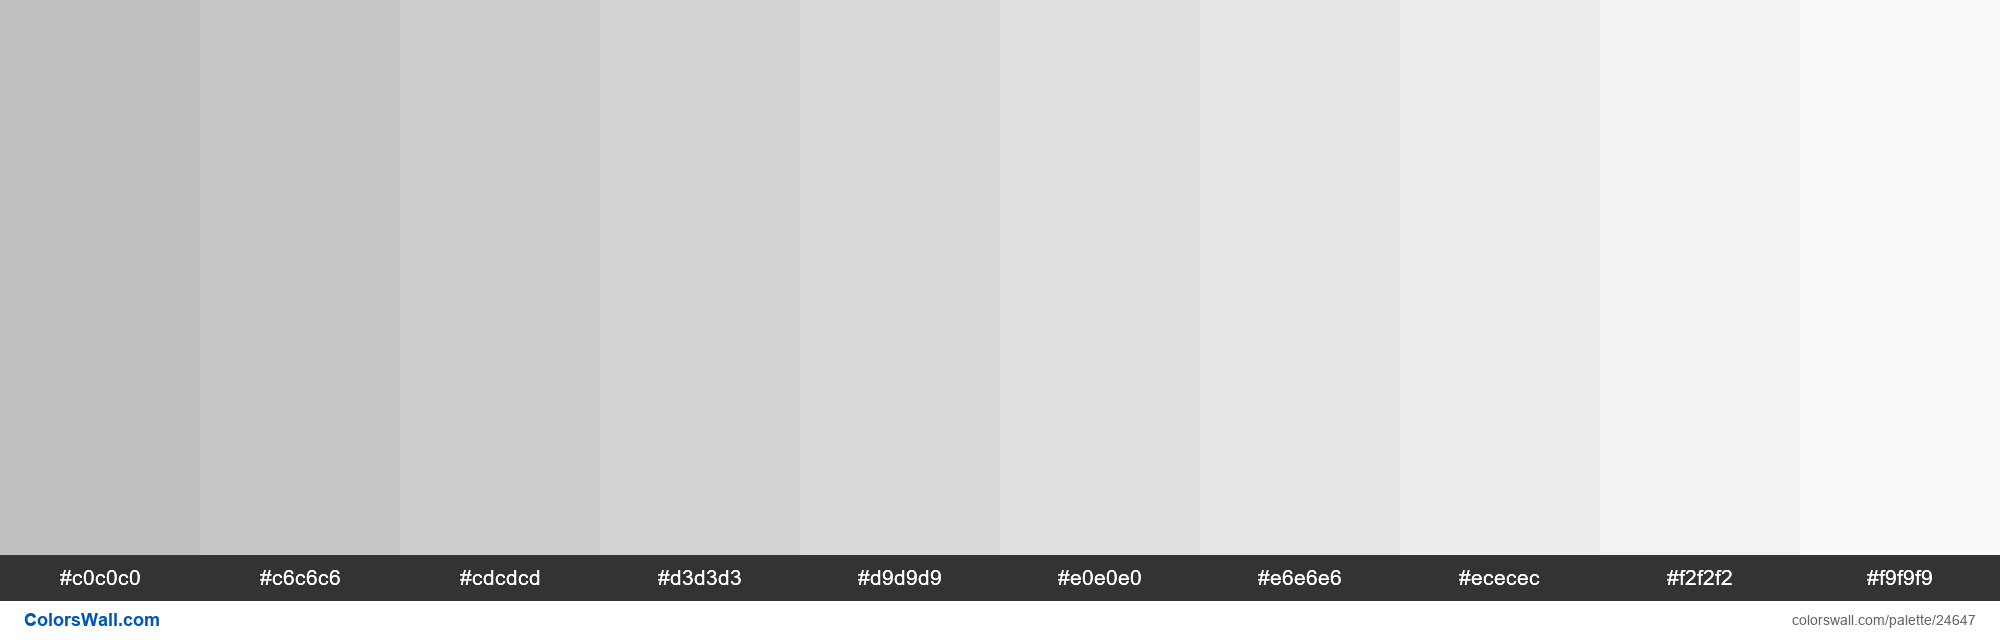 Tints of Silver #C0C0C0 hex color - #24647